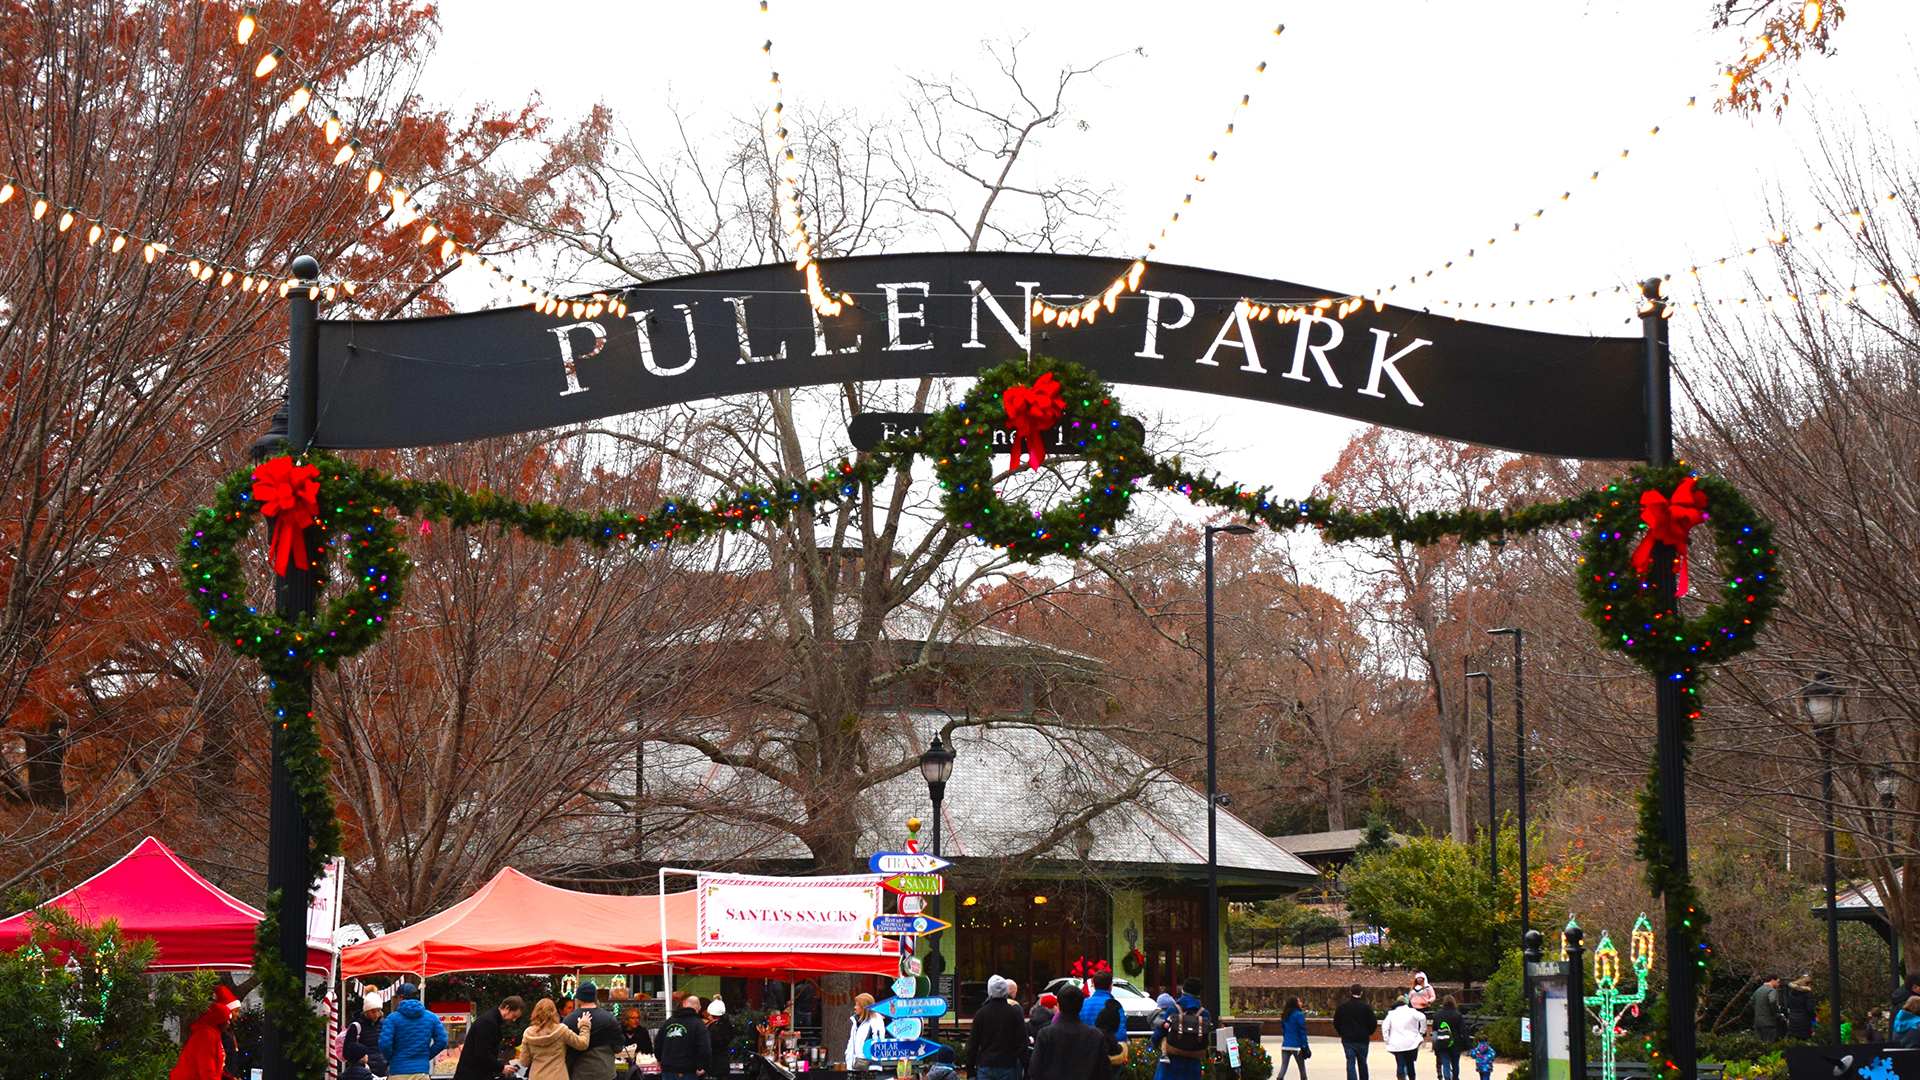 Christmas Events In Raleigh Nc 2021 Holiday Express Raleighnc Gov